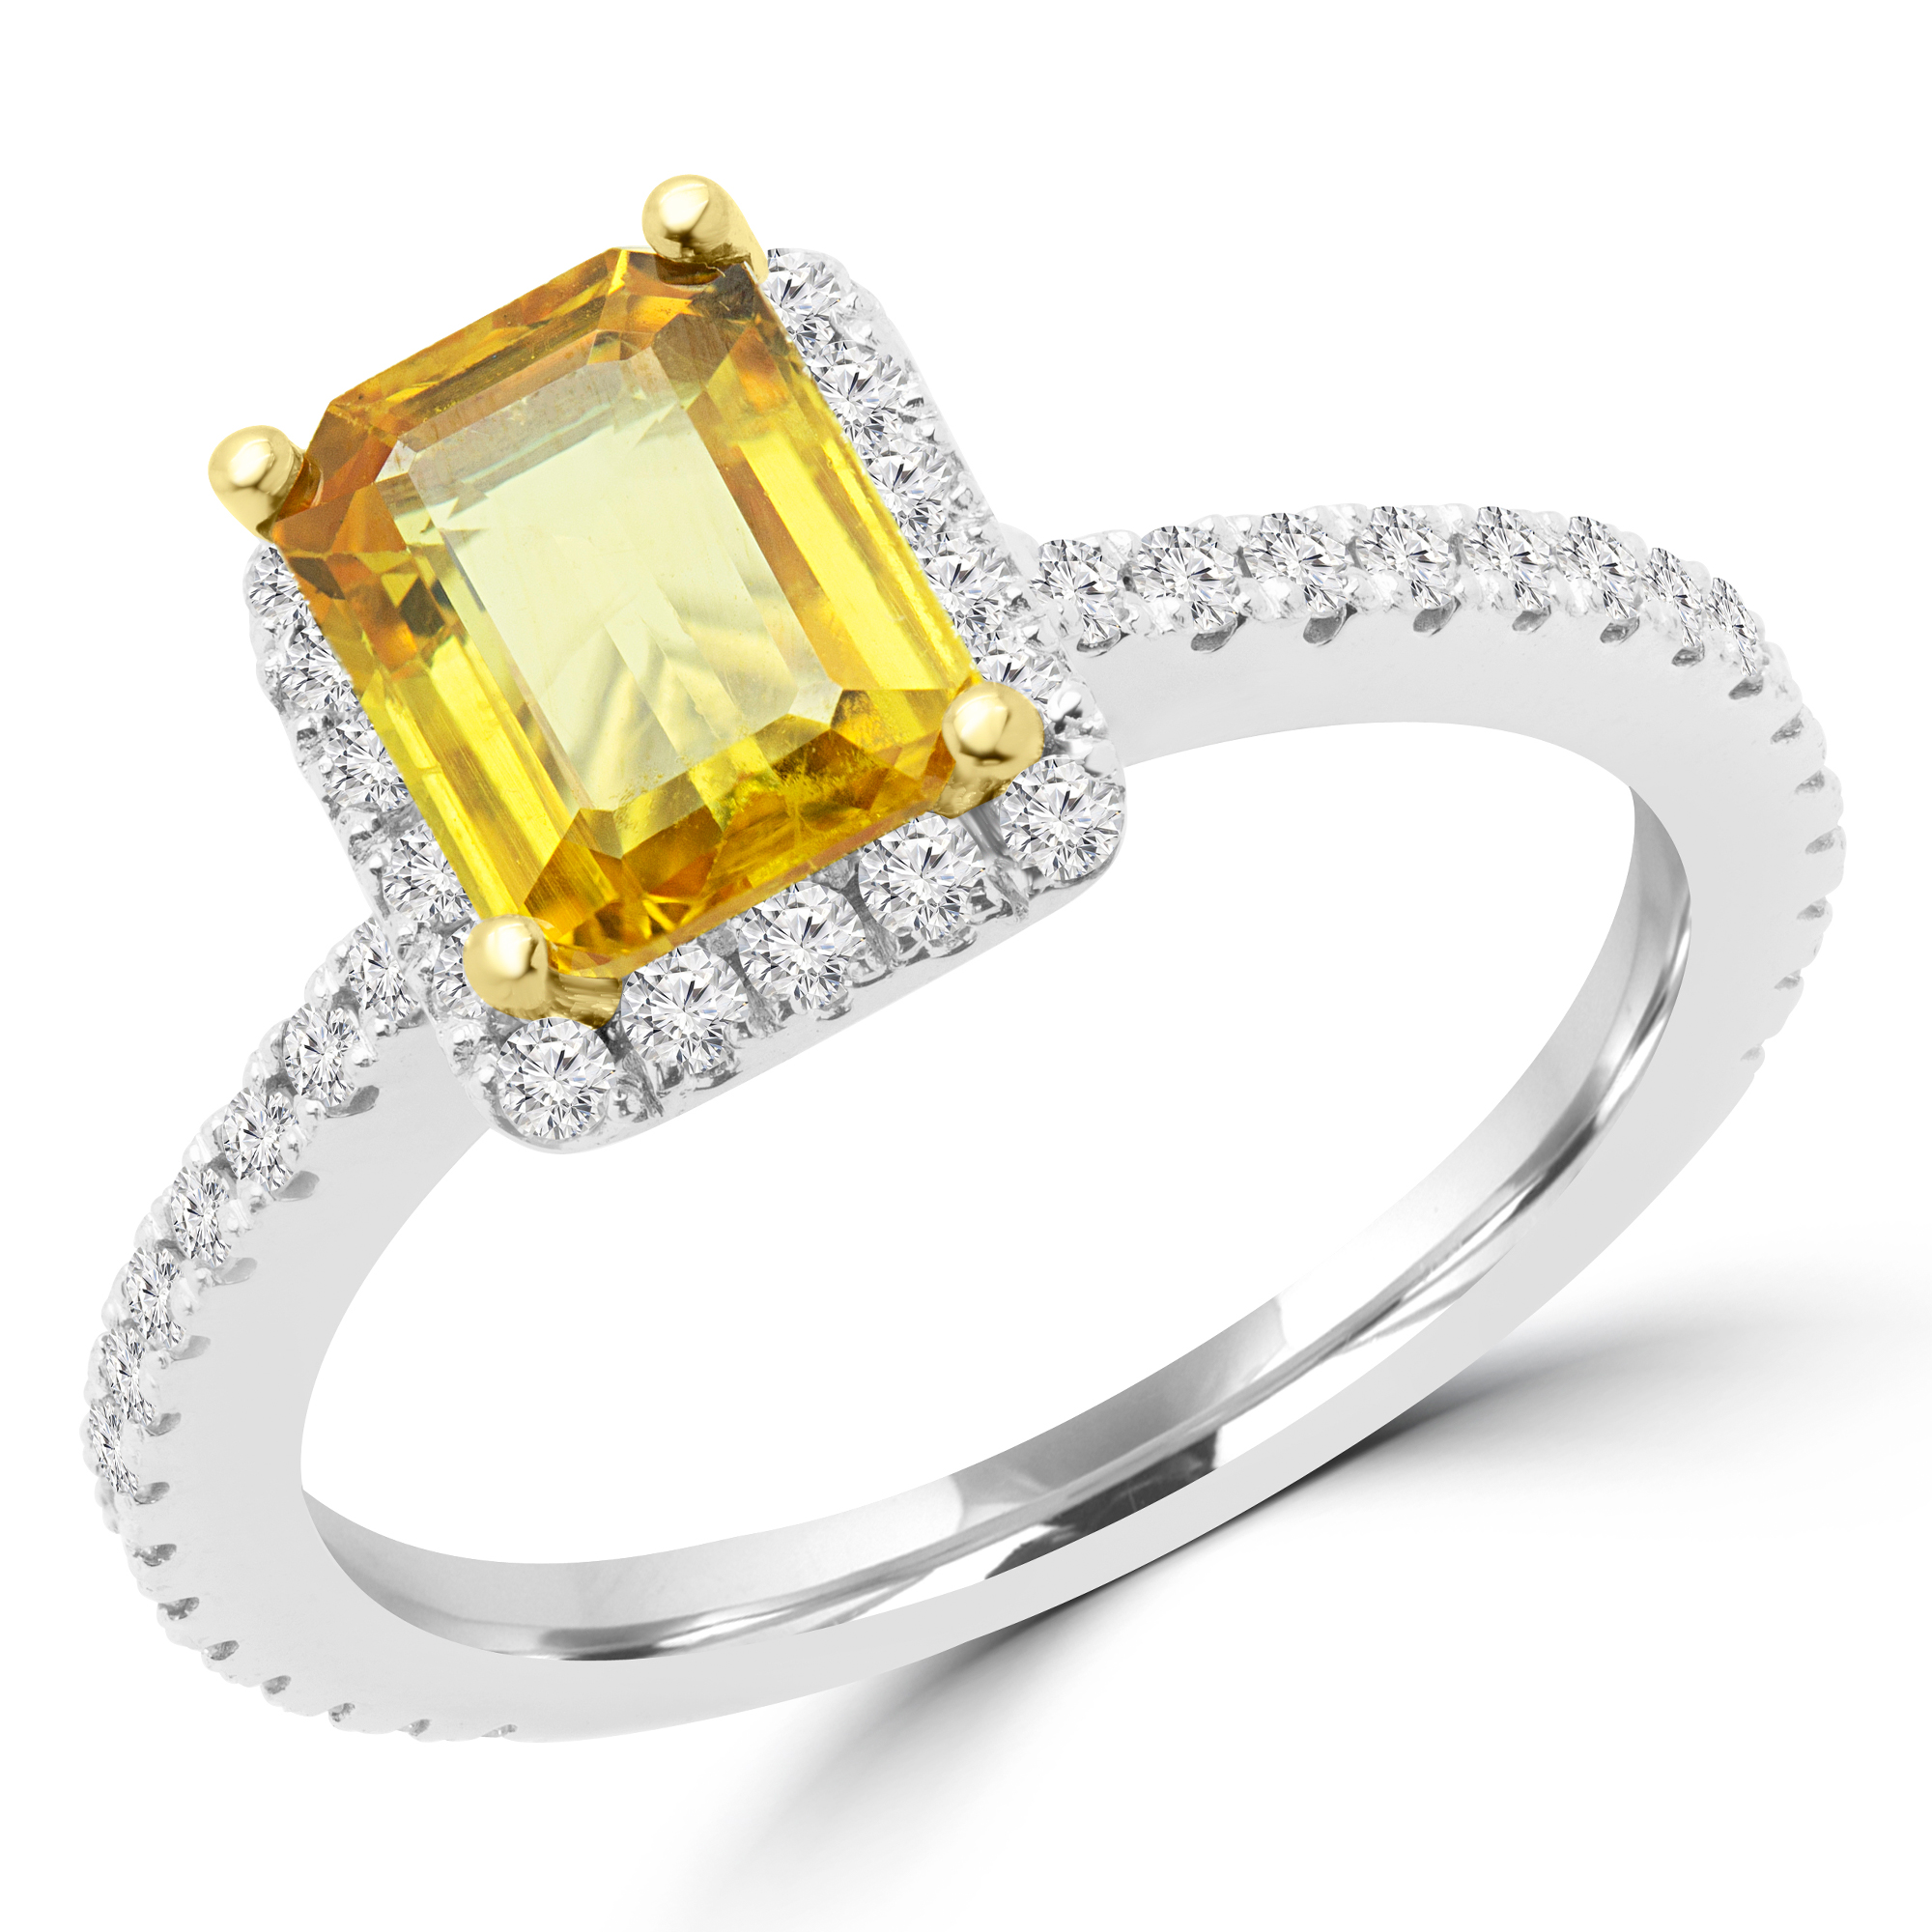 2 1/2 CTW Emerald Yellow Sapphire Halo Cocktail Ring in 14K White Gold (MD170170) - image 2 de 2